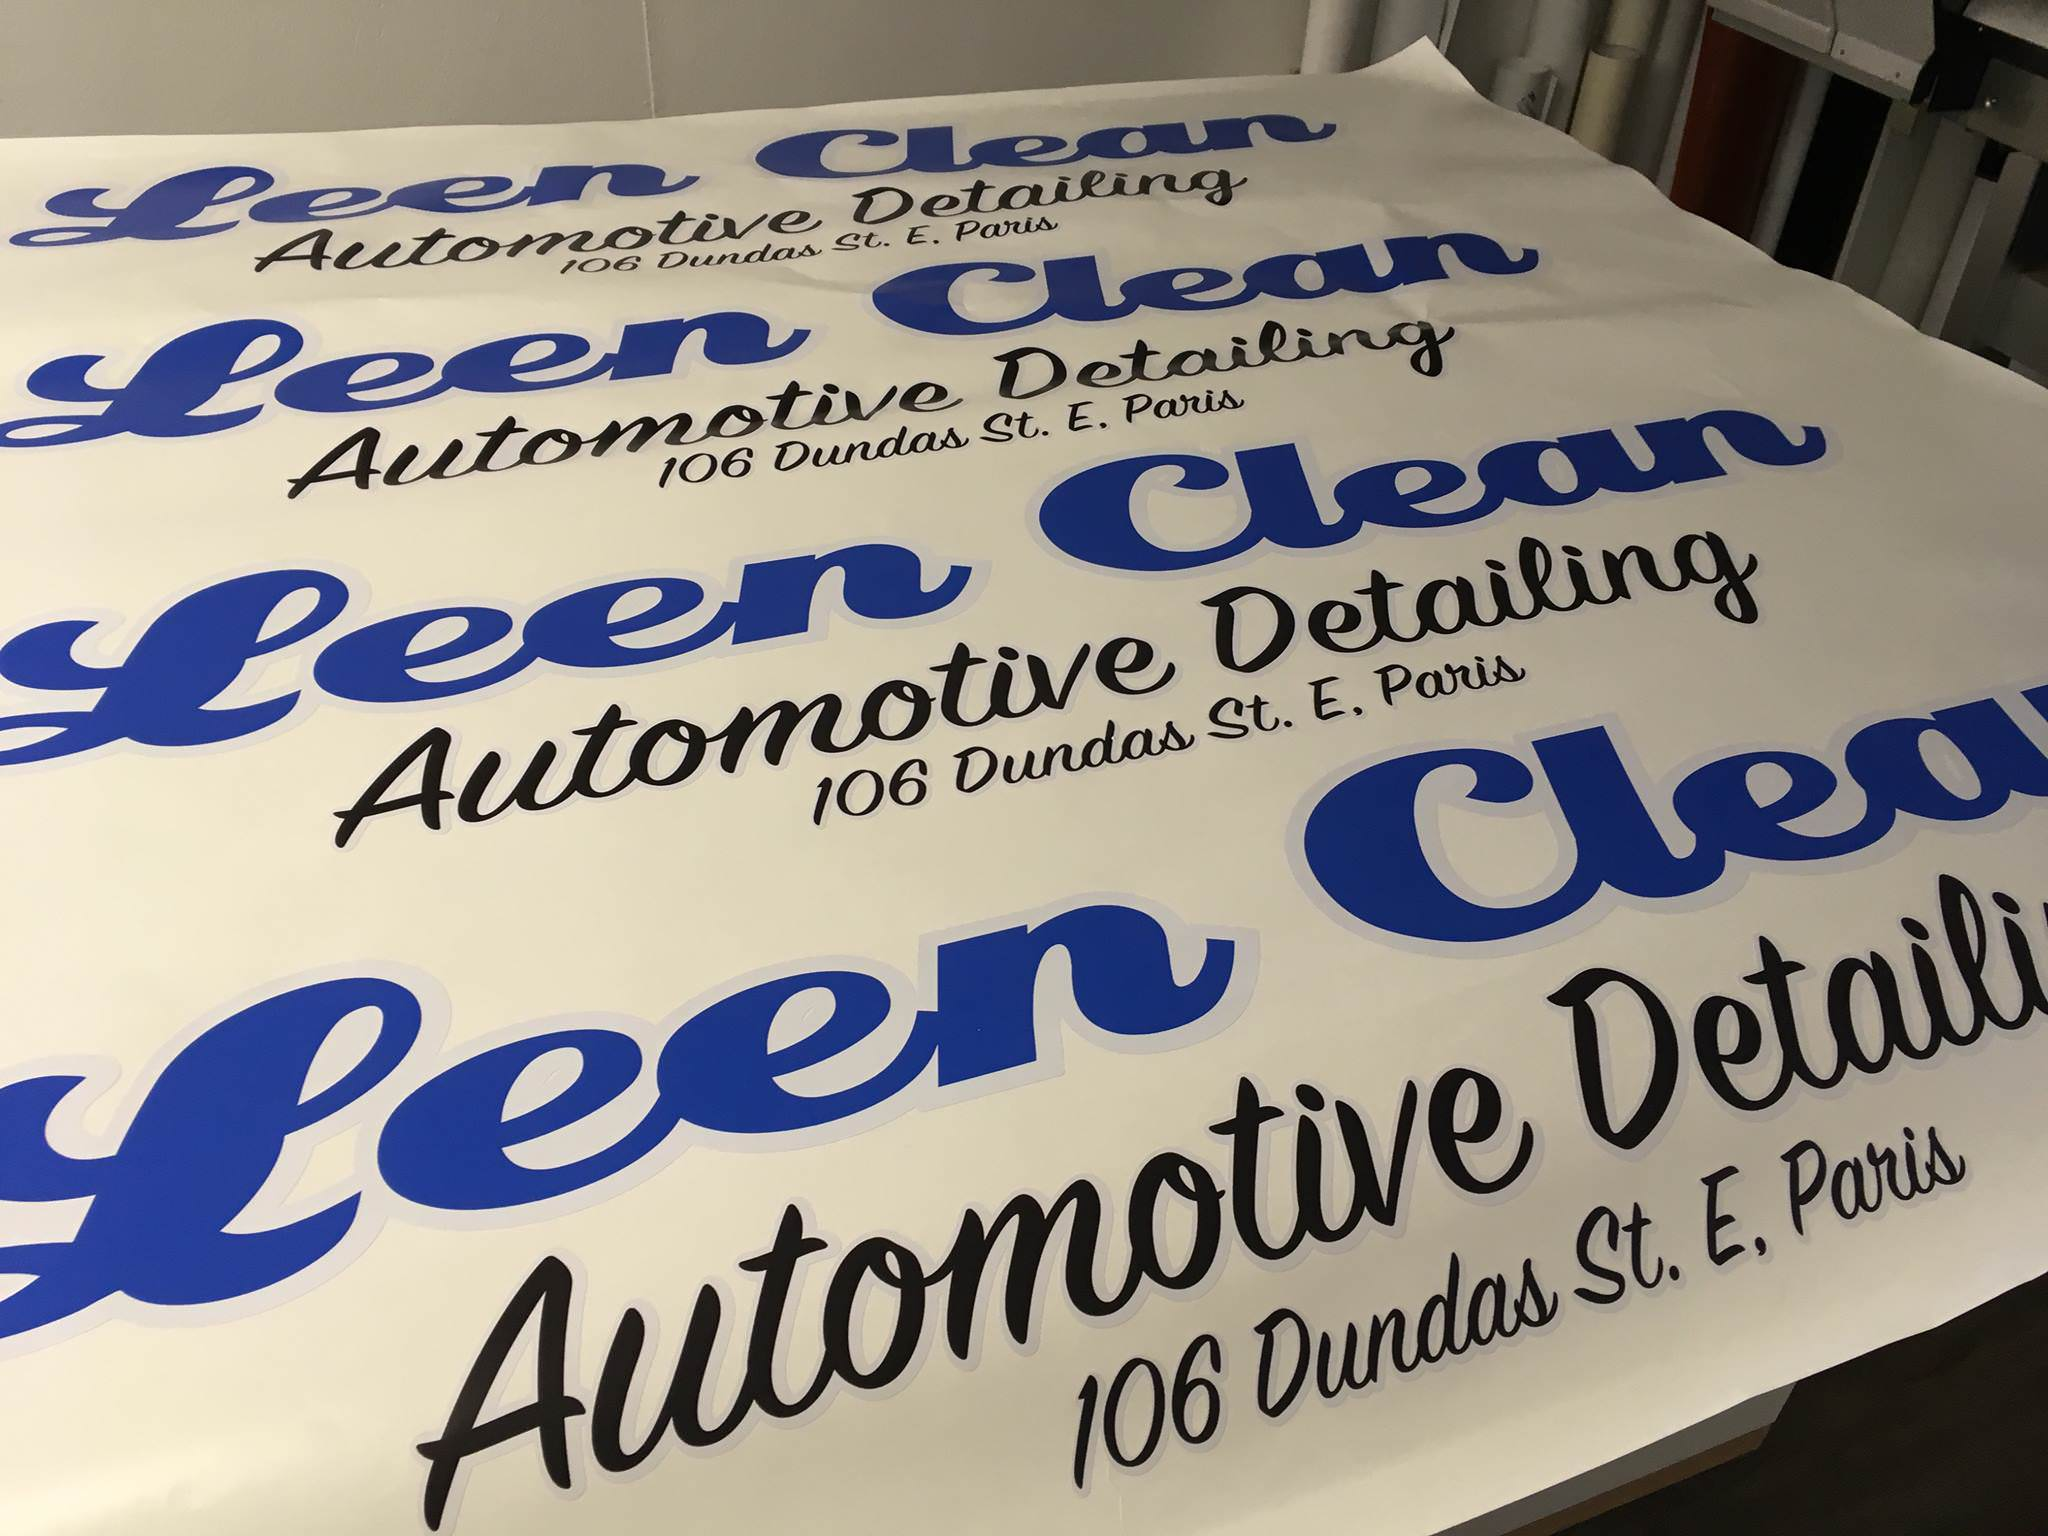 Custom Decal Sicker Printing For Cars Amp Store Windows